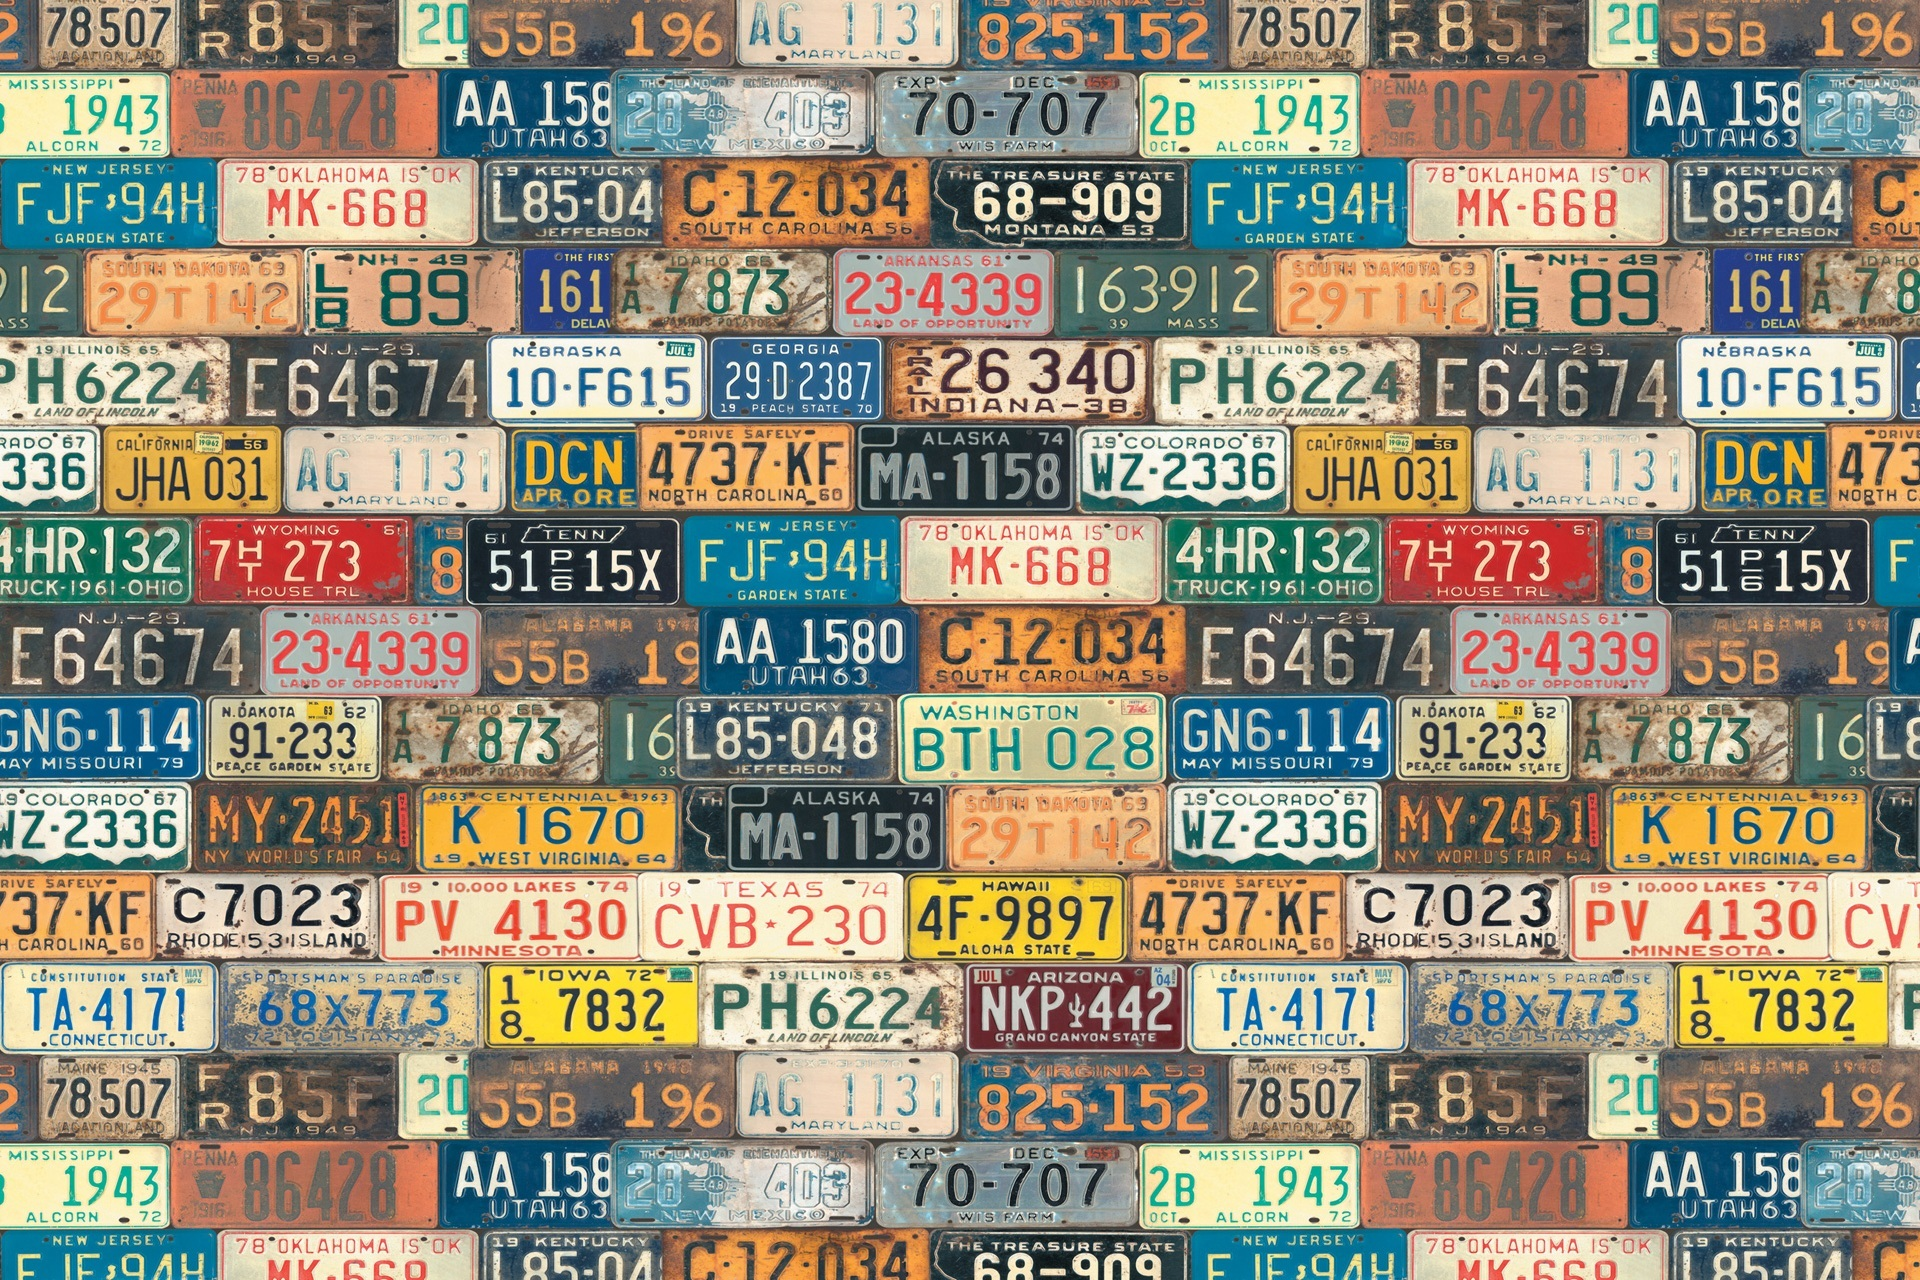 Registration Plates Full HD Wallpaper And Background Image